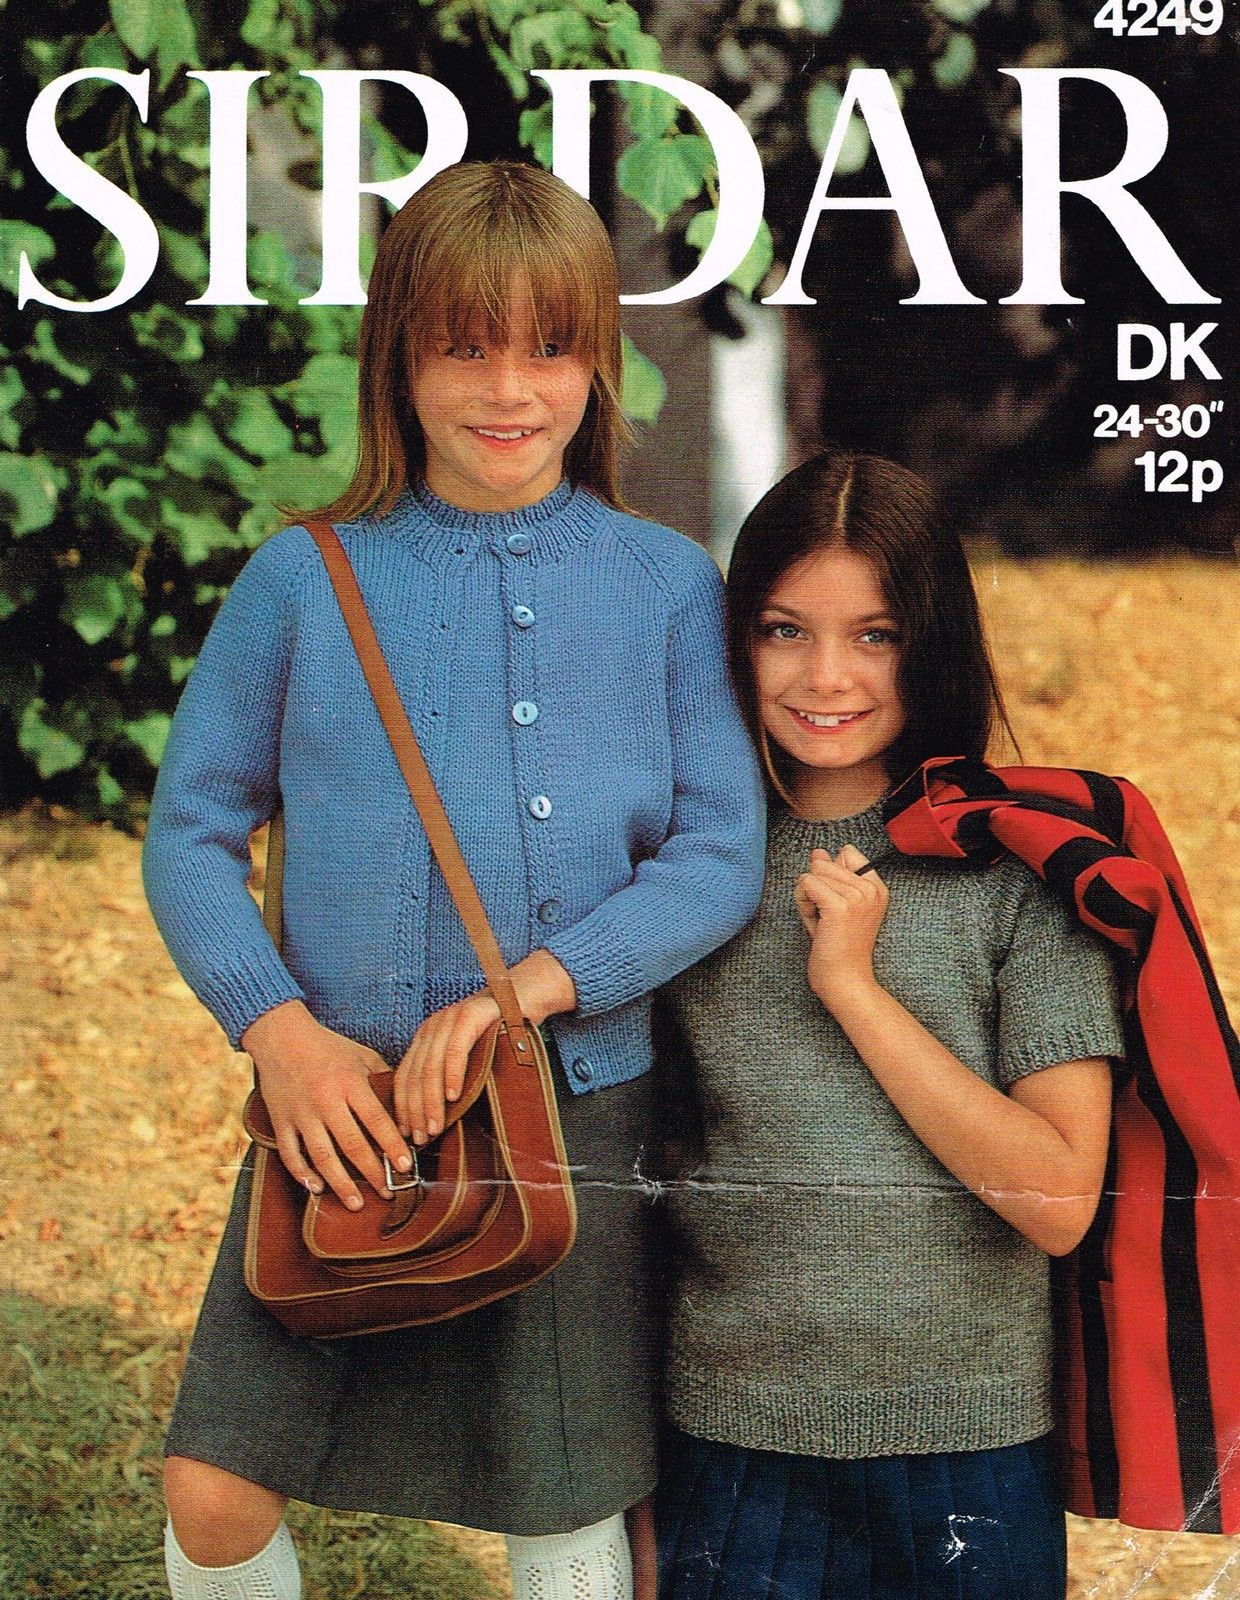 Knitting pattern girls easy to knit summer twin set sweater knitting pattern girls easy to knit summer twin set sweater cardigan sirdar 4249 bankloansurffo Image collections